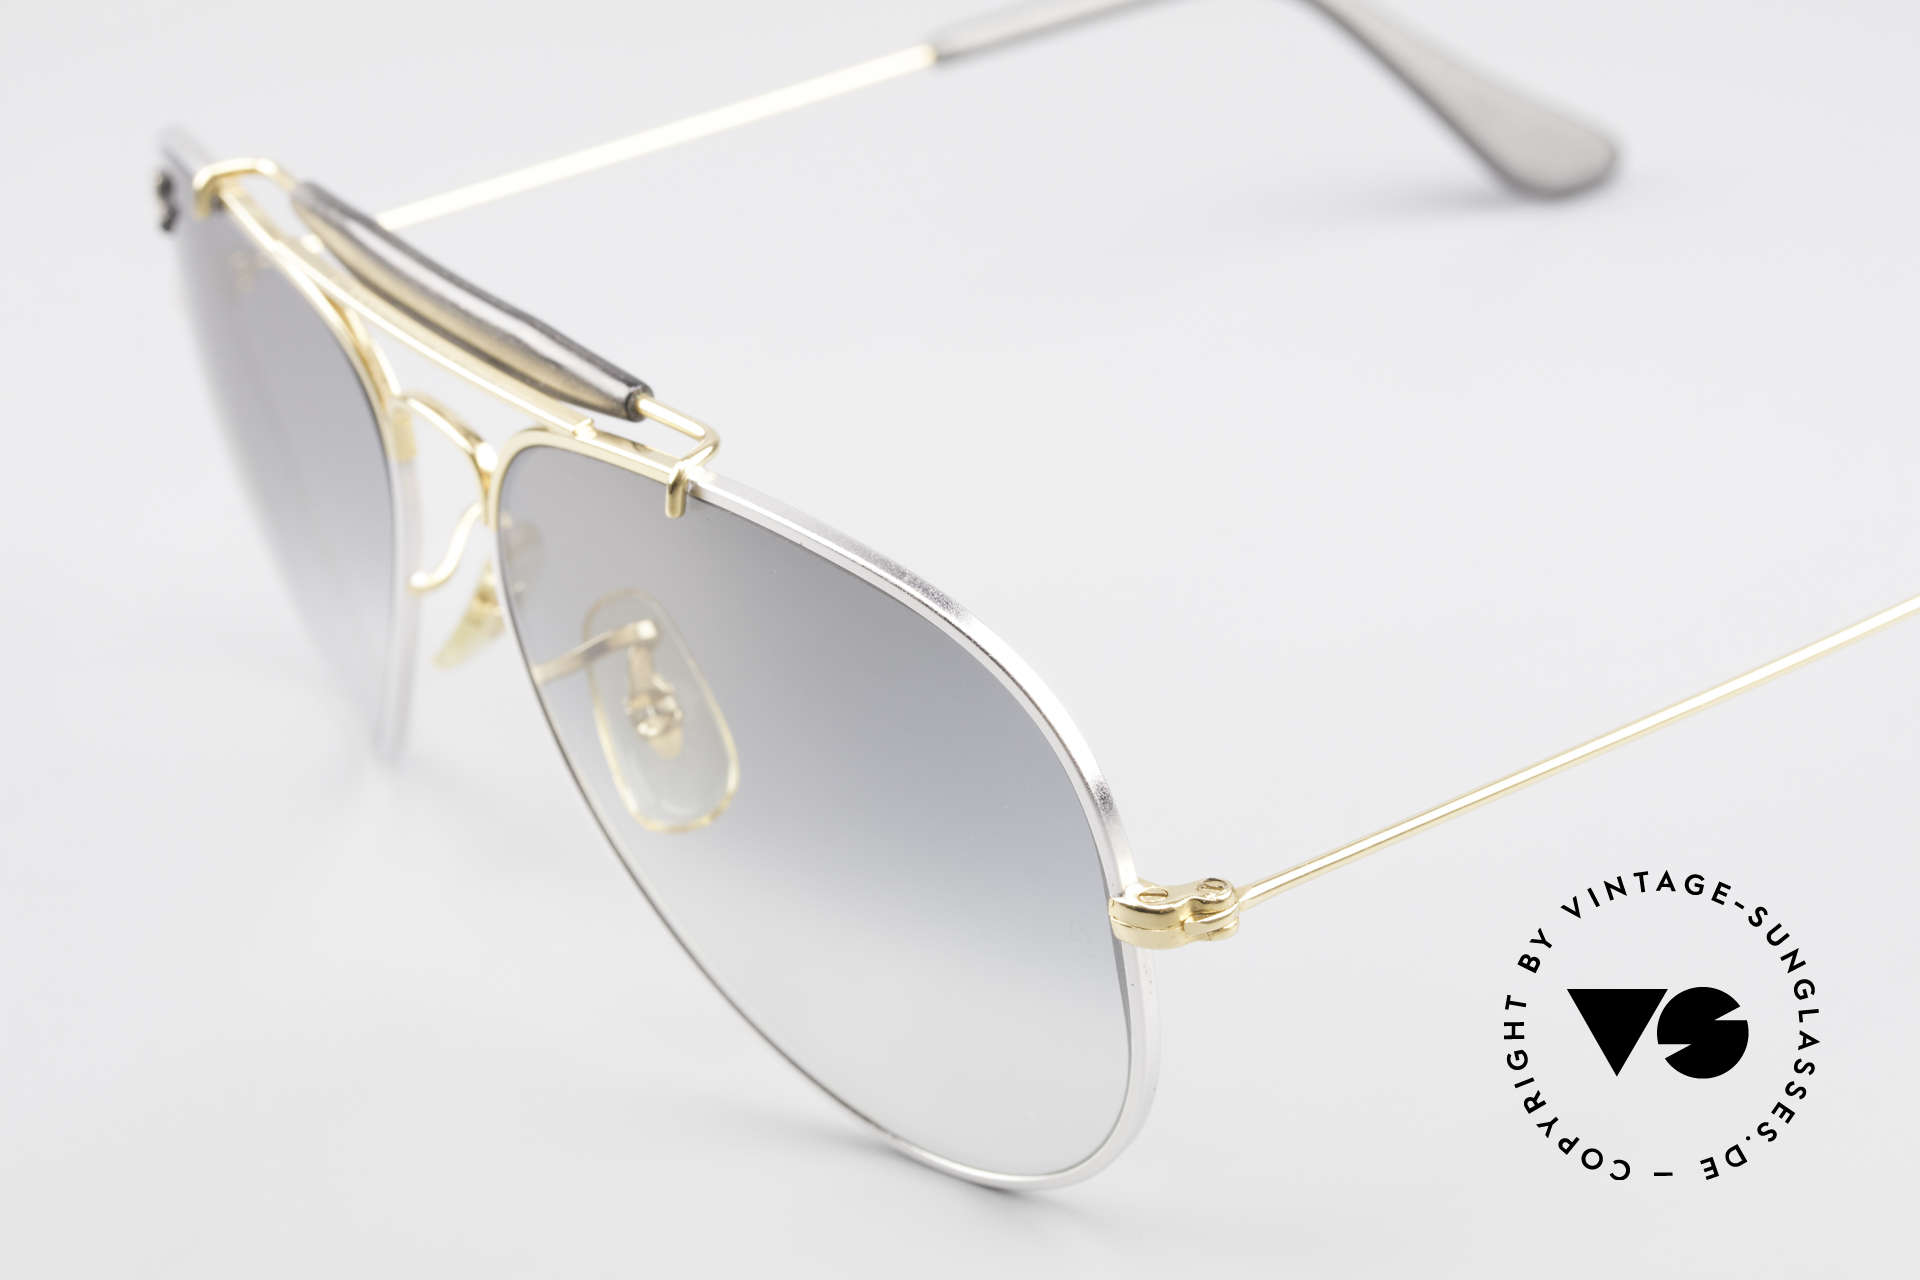 Ray Ban Outdoorsman Precious Metals Titanium, NO retro frame; an old original with serial number, Made for Men and Women